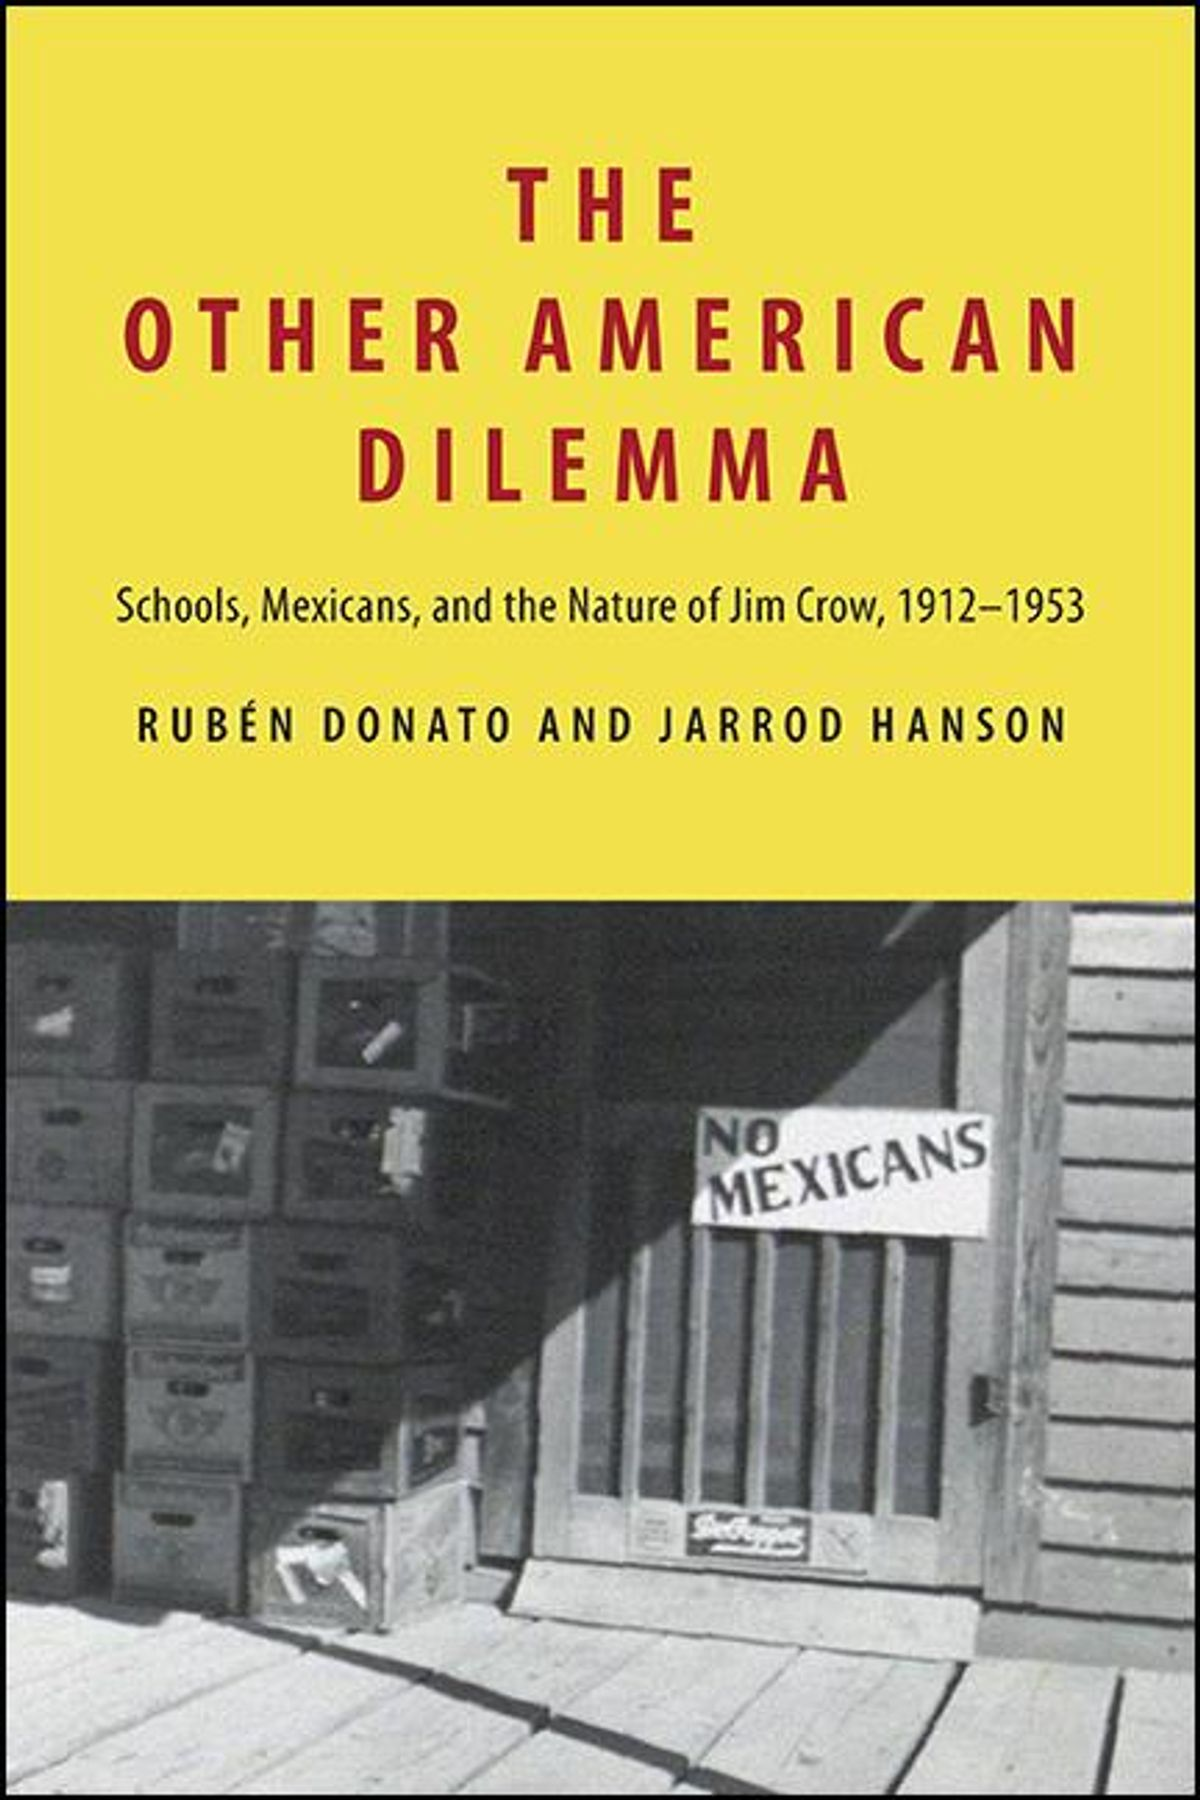 The other American dilemma : schools, Mexicans, and the nature of Jim Crow, 1912-1953